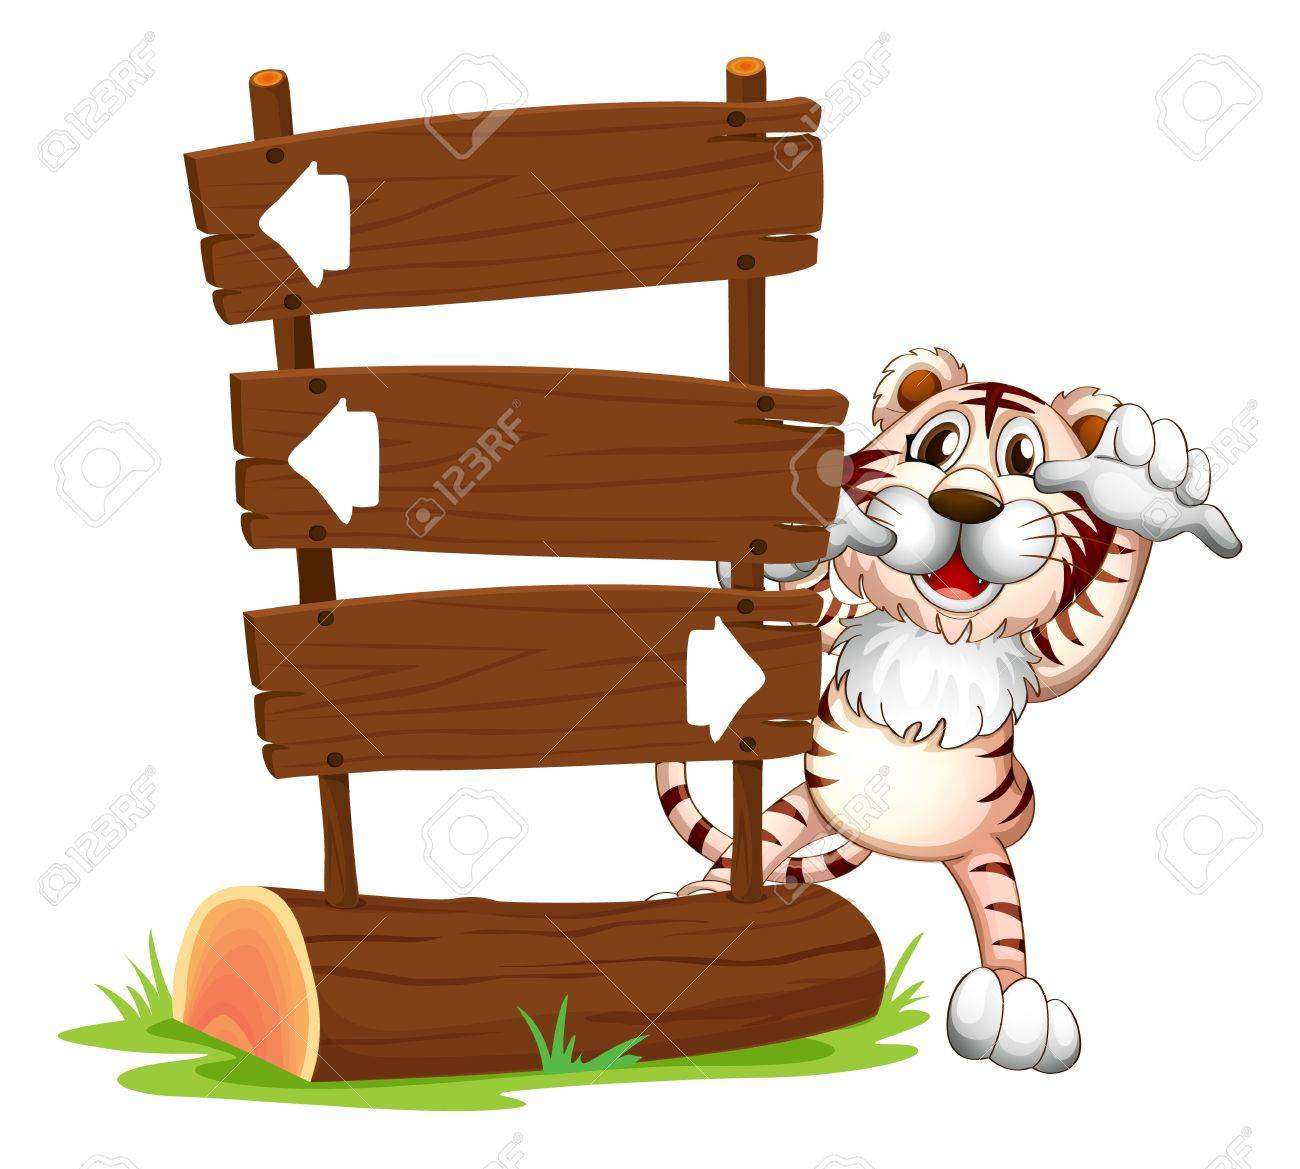 Illustration of a tiger hiding at the back of a signboard Stock Vector - 17889188